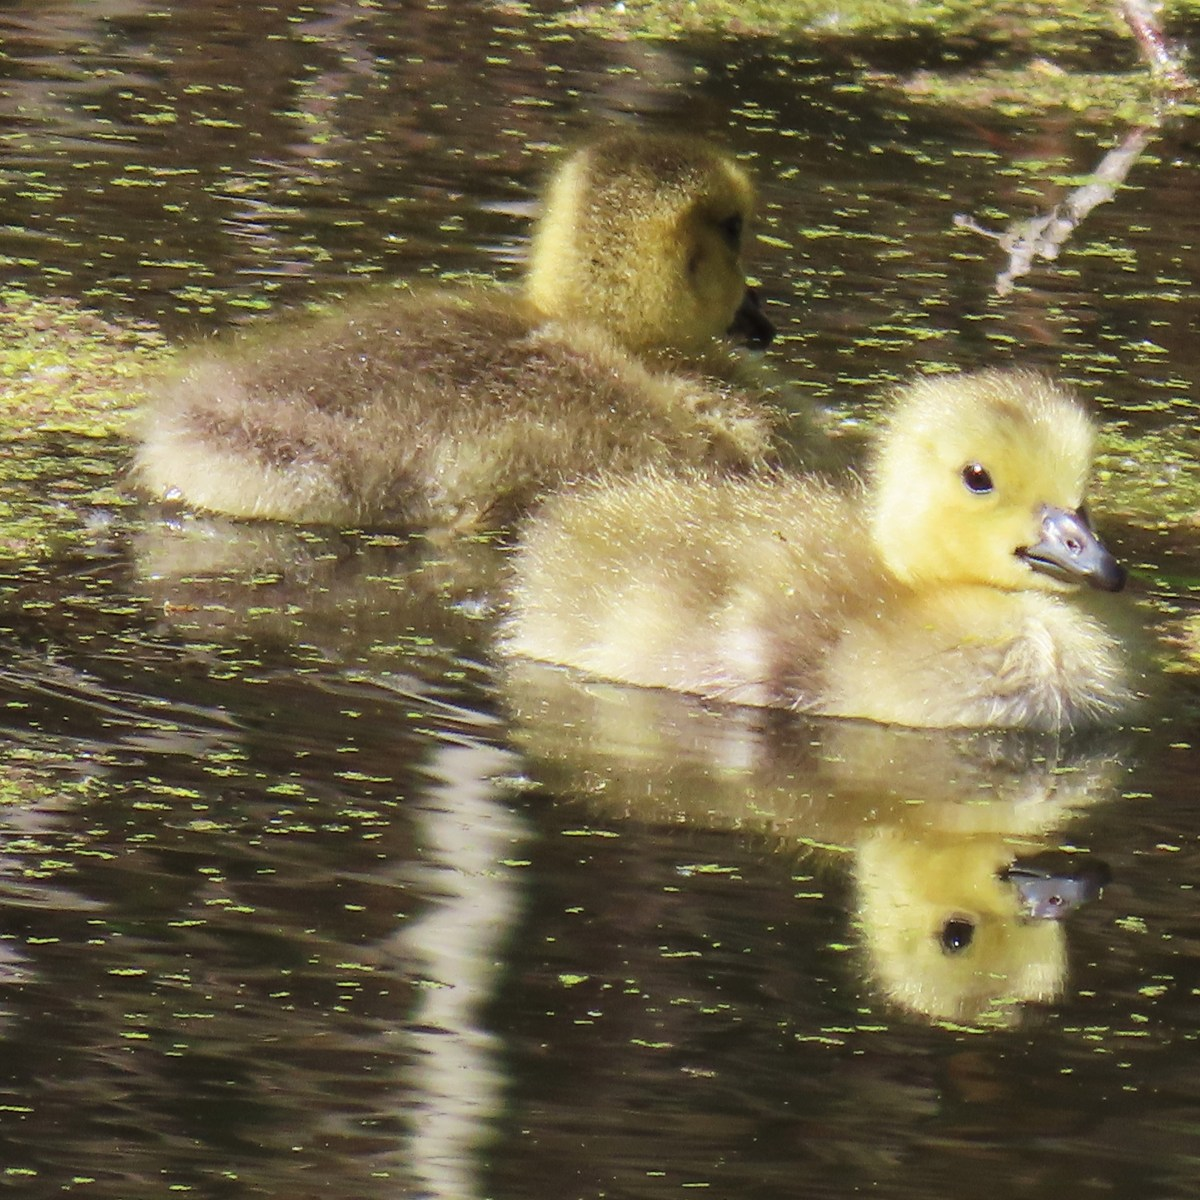 Two fluffy-yellow goslings float in duckweed-covered water